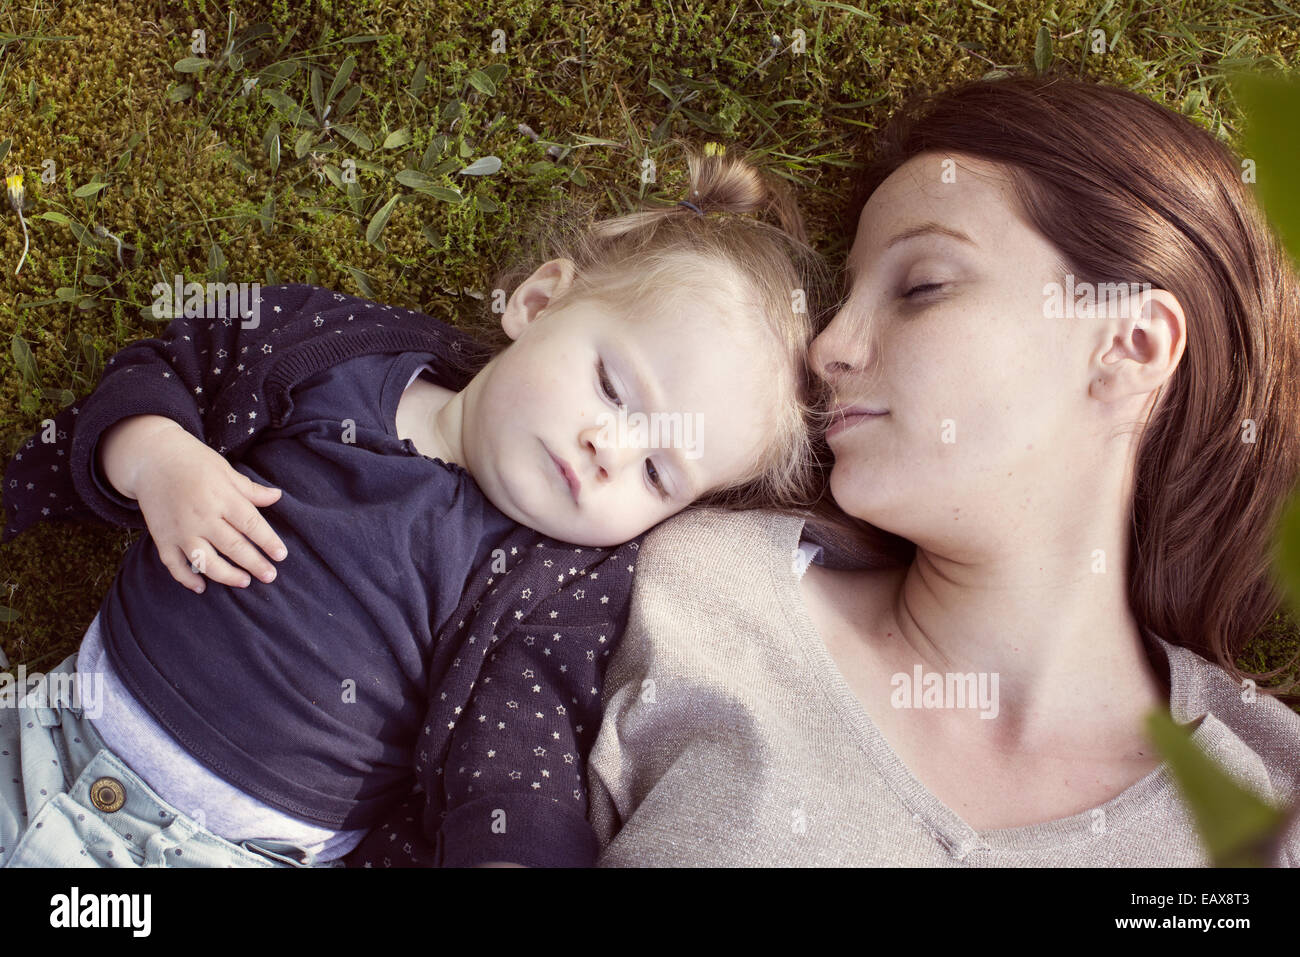 Mother and baby girl napping on grass Stock Photo